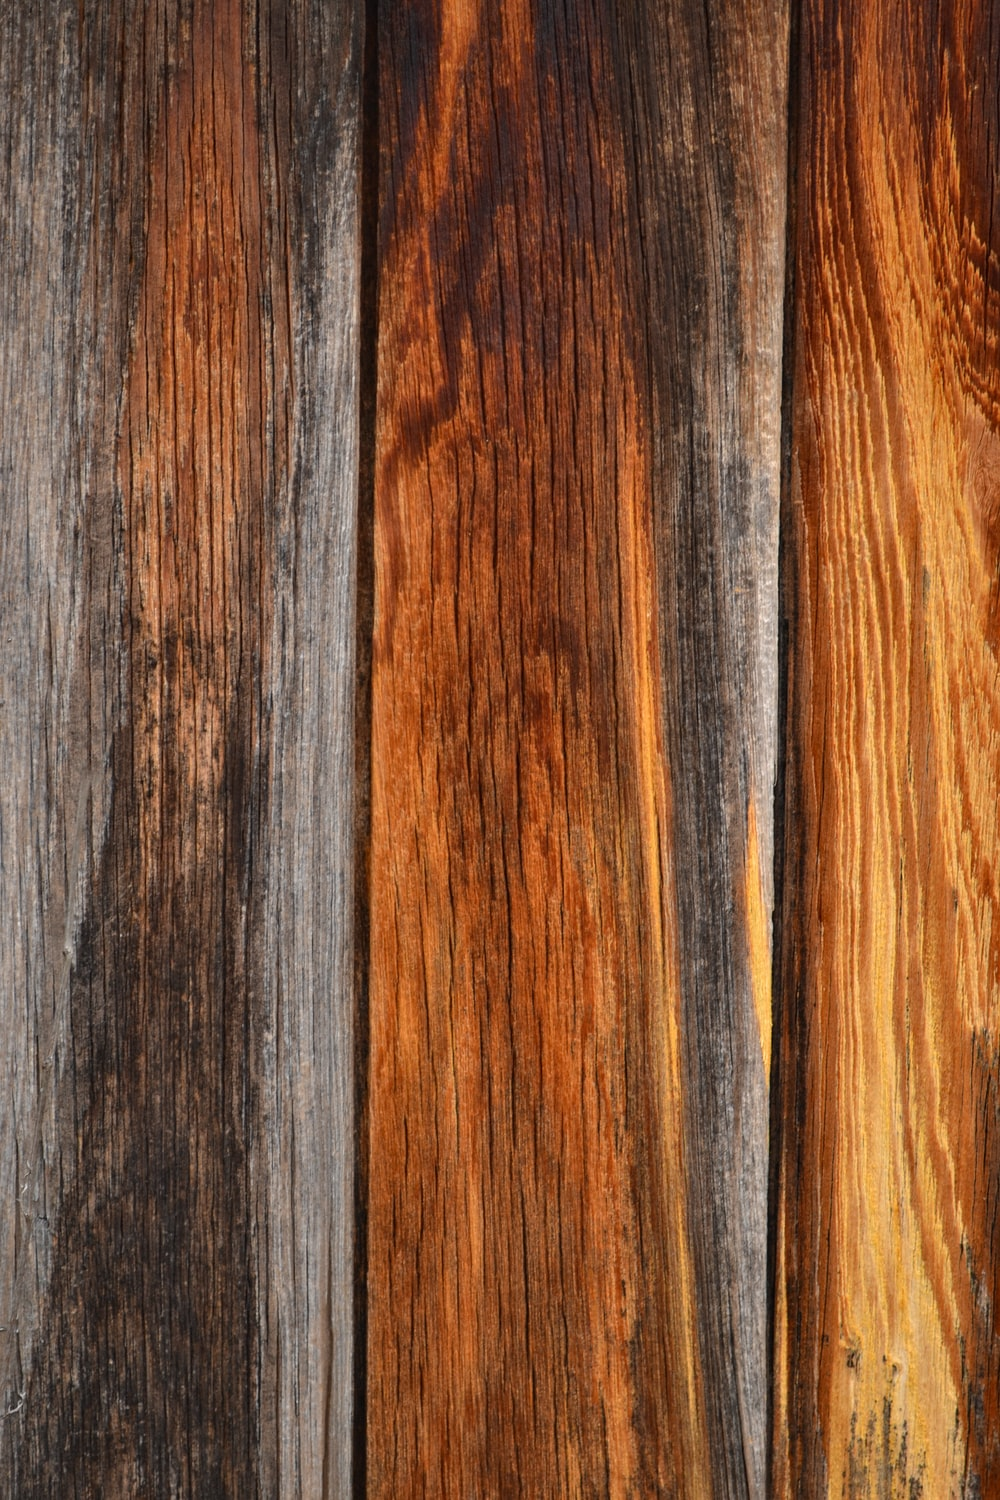 brown and black wooden board